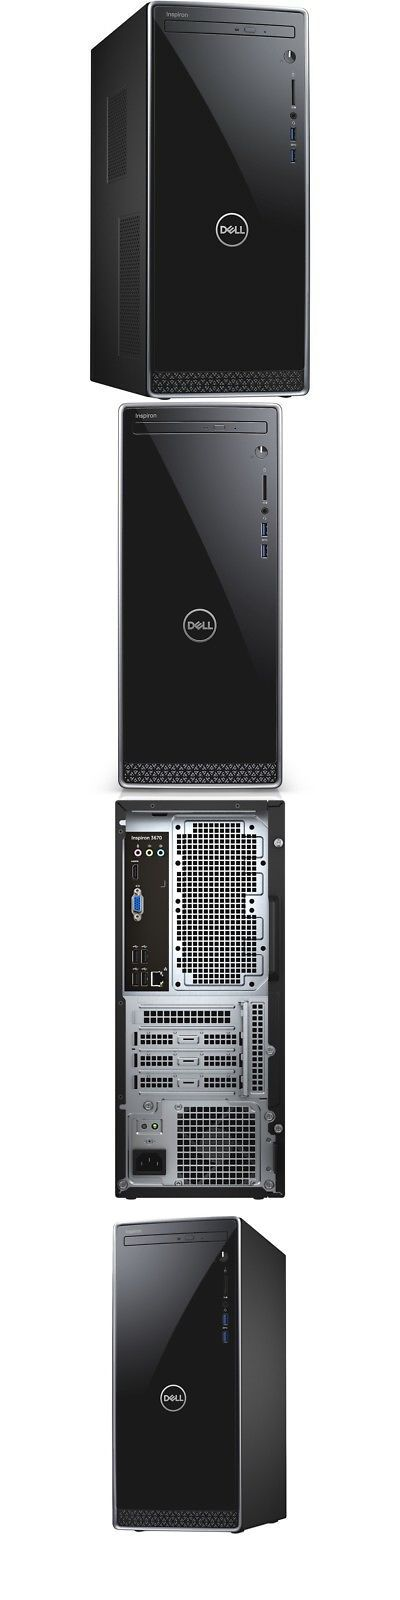 Desktops and All-In-Ones 171957: Dell Inspiron 3670 Intel